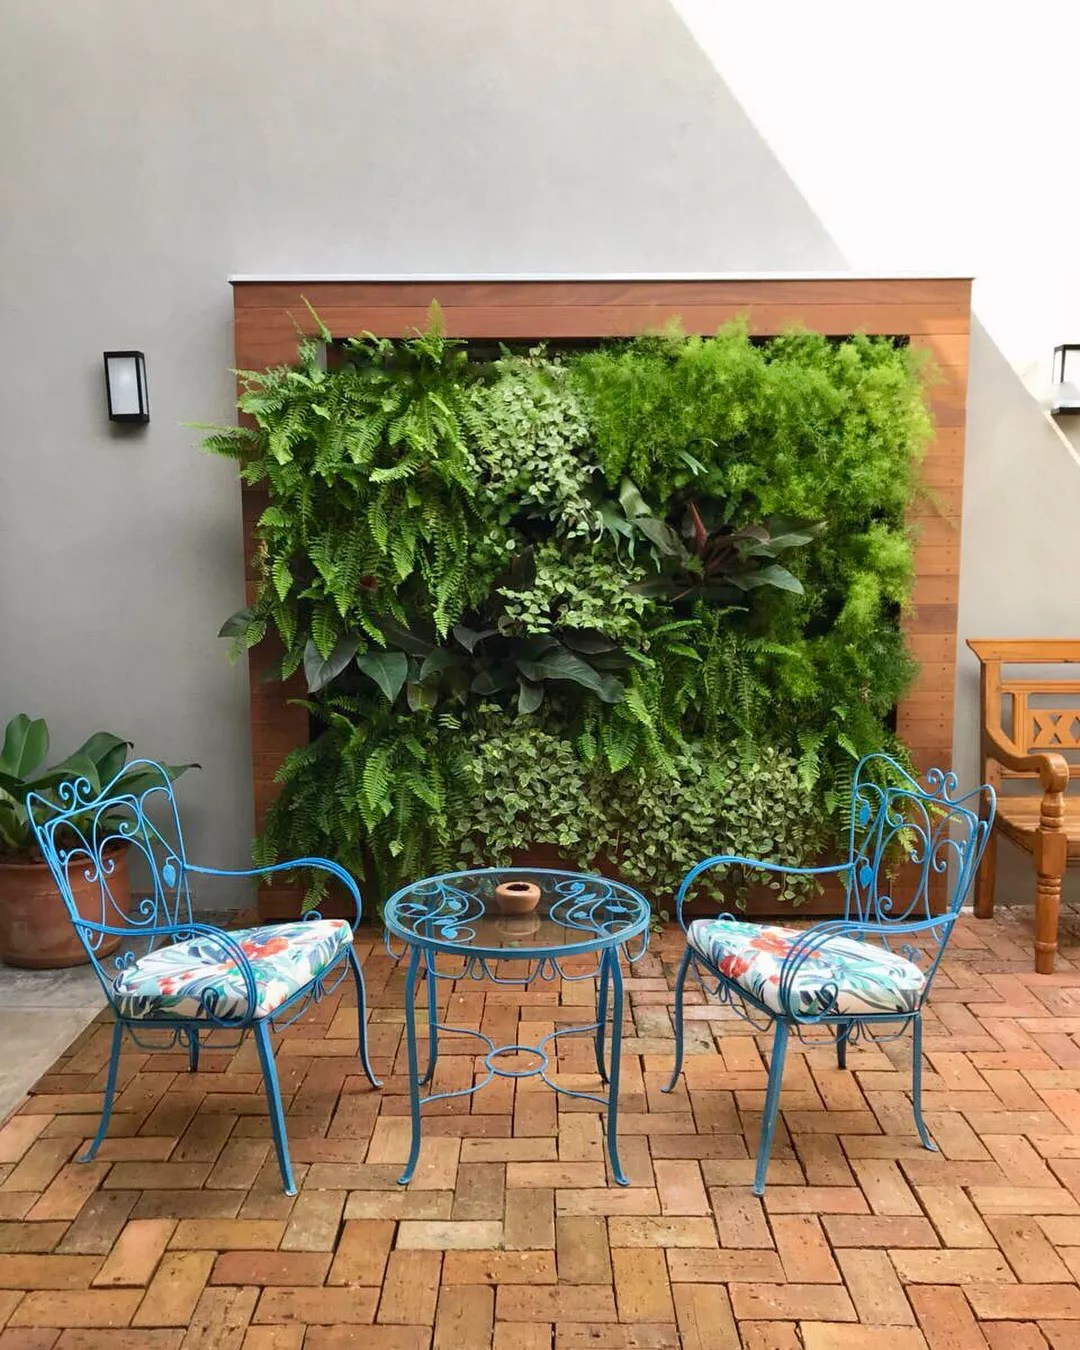 vertical garden wall behind a small bistro set of chairs and a table photo by Instagram user @nogueiraecamillo.arq